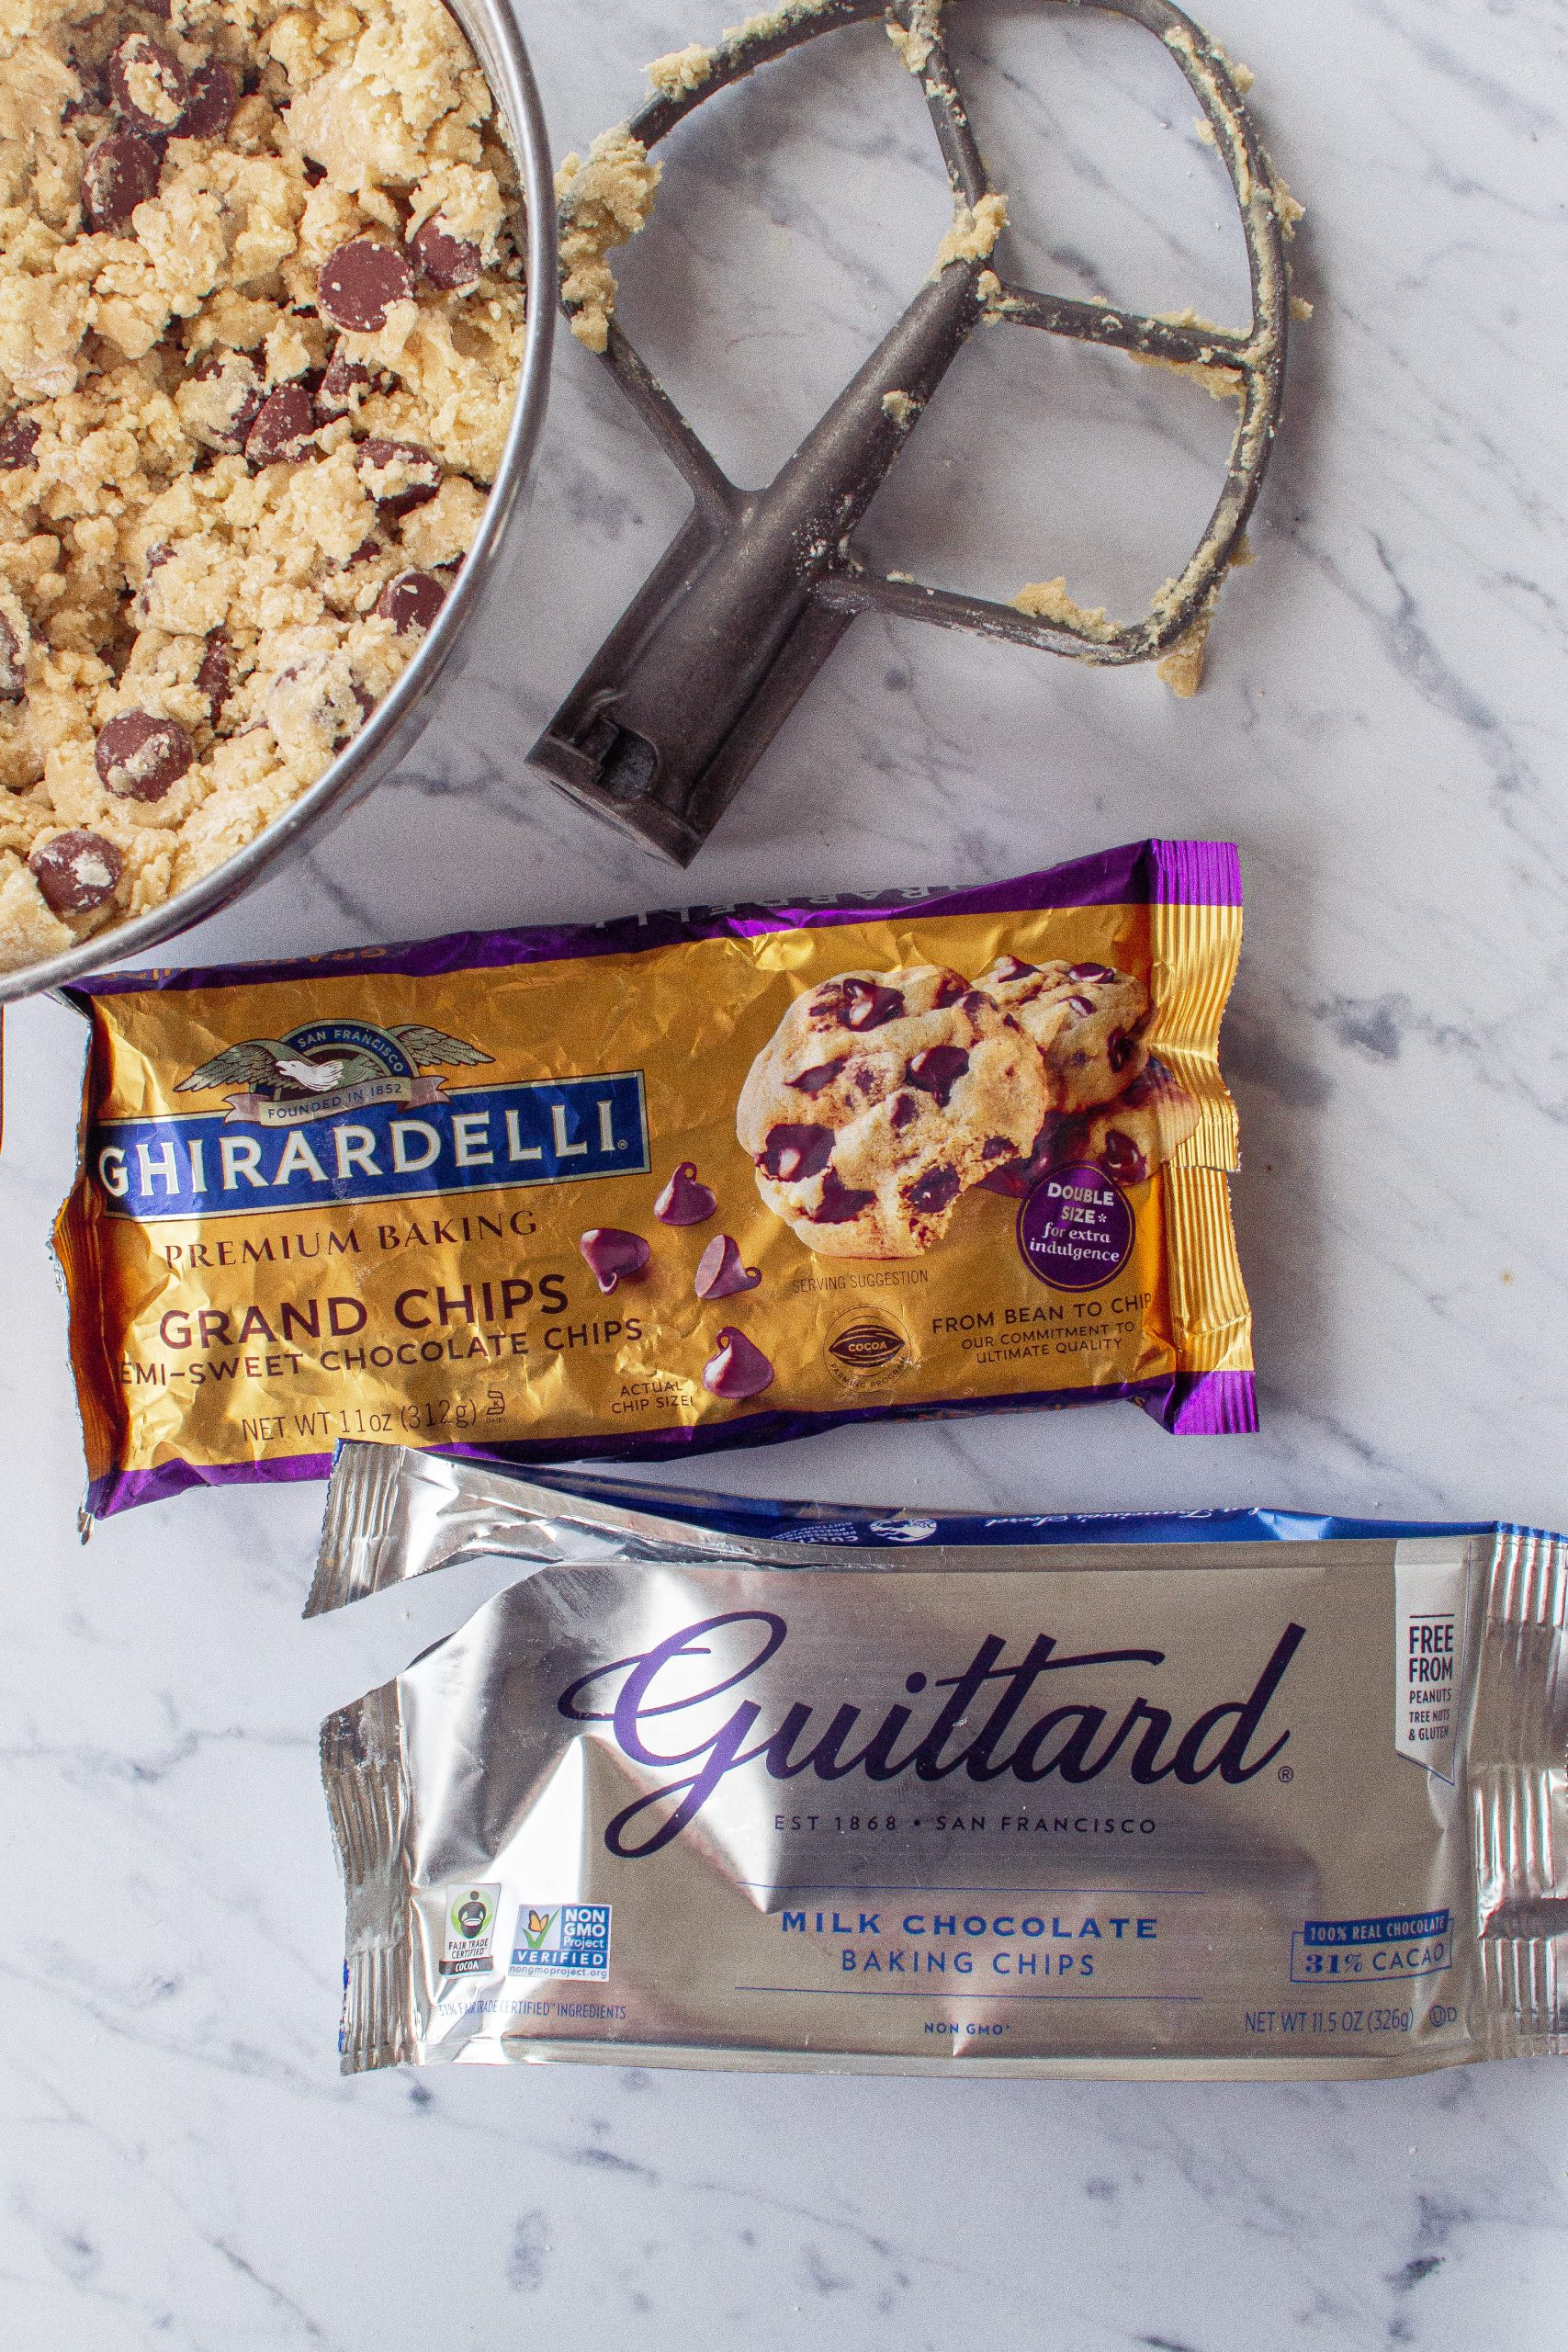 Best baking chocolate chip varieties to use. Guittard is milk chocolate chips and Ghirardelli is bittersweet chocolate chips